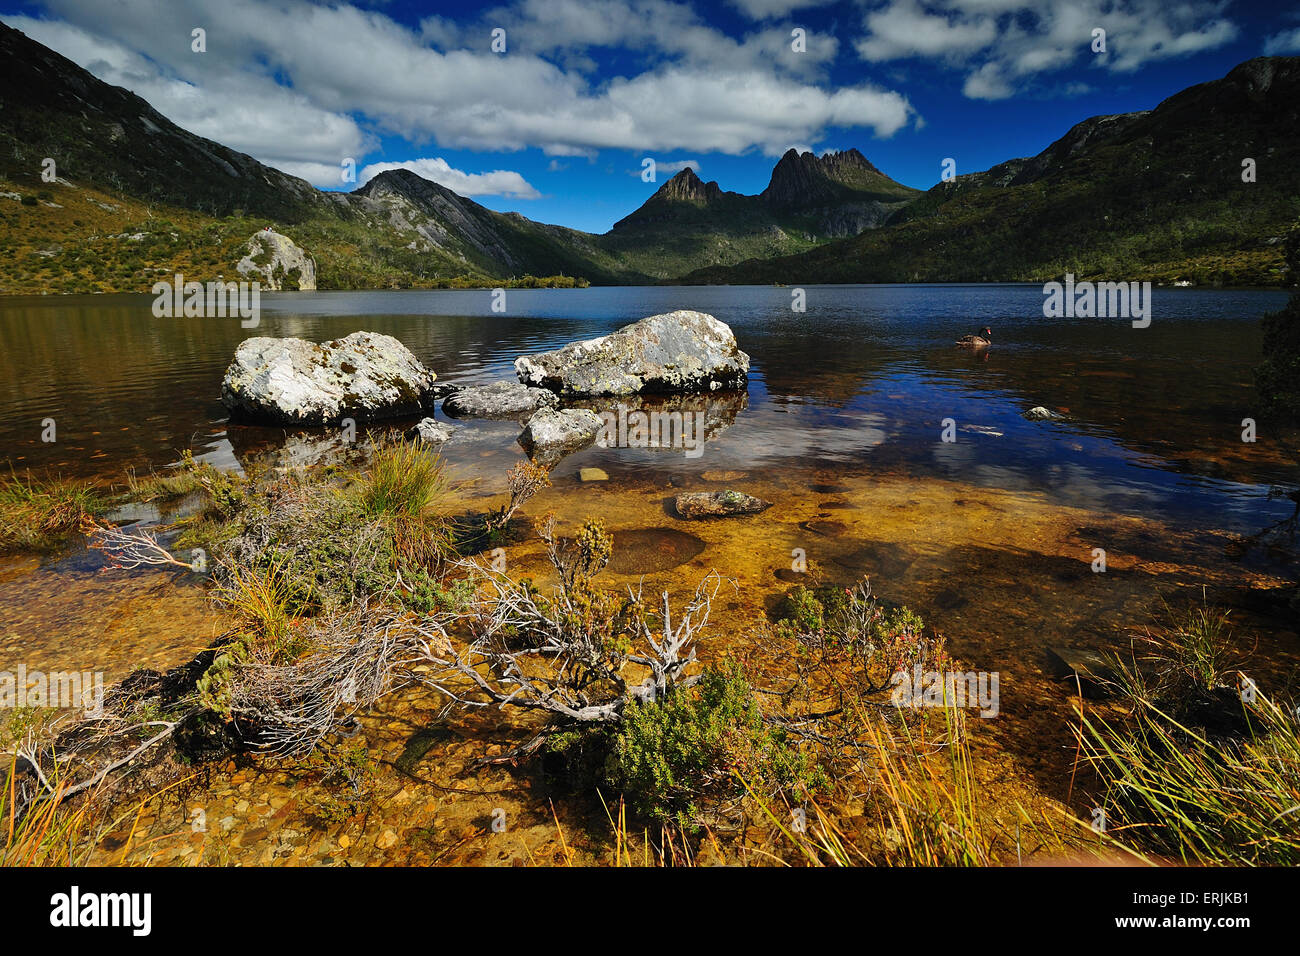 Cradle Mountain National Park with Dove lake - Stock Image